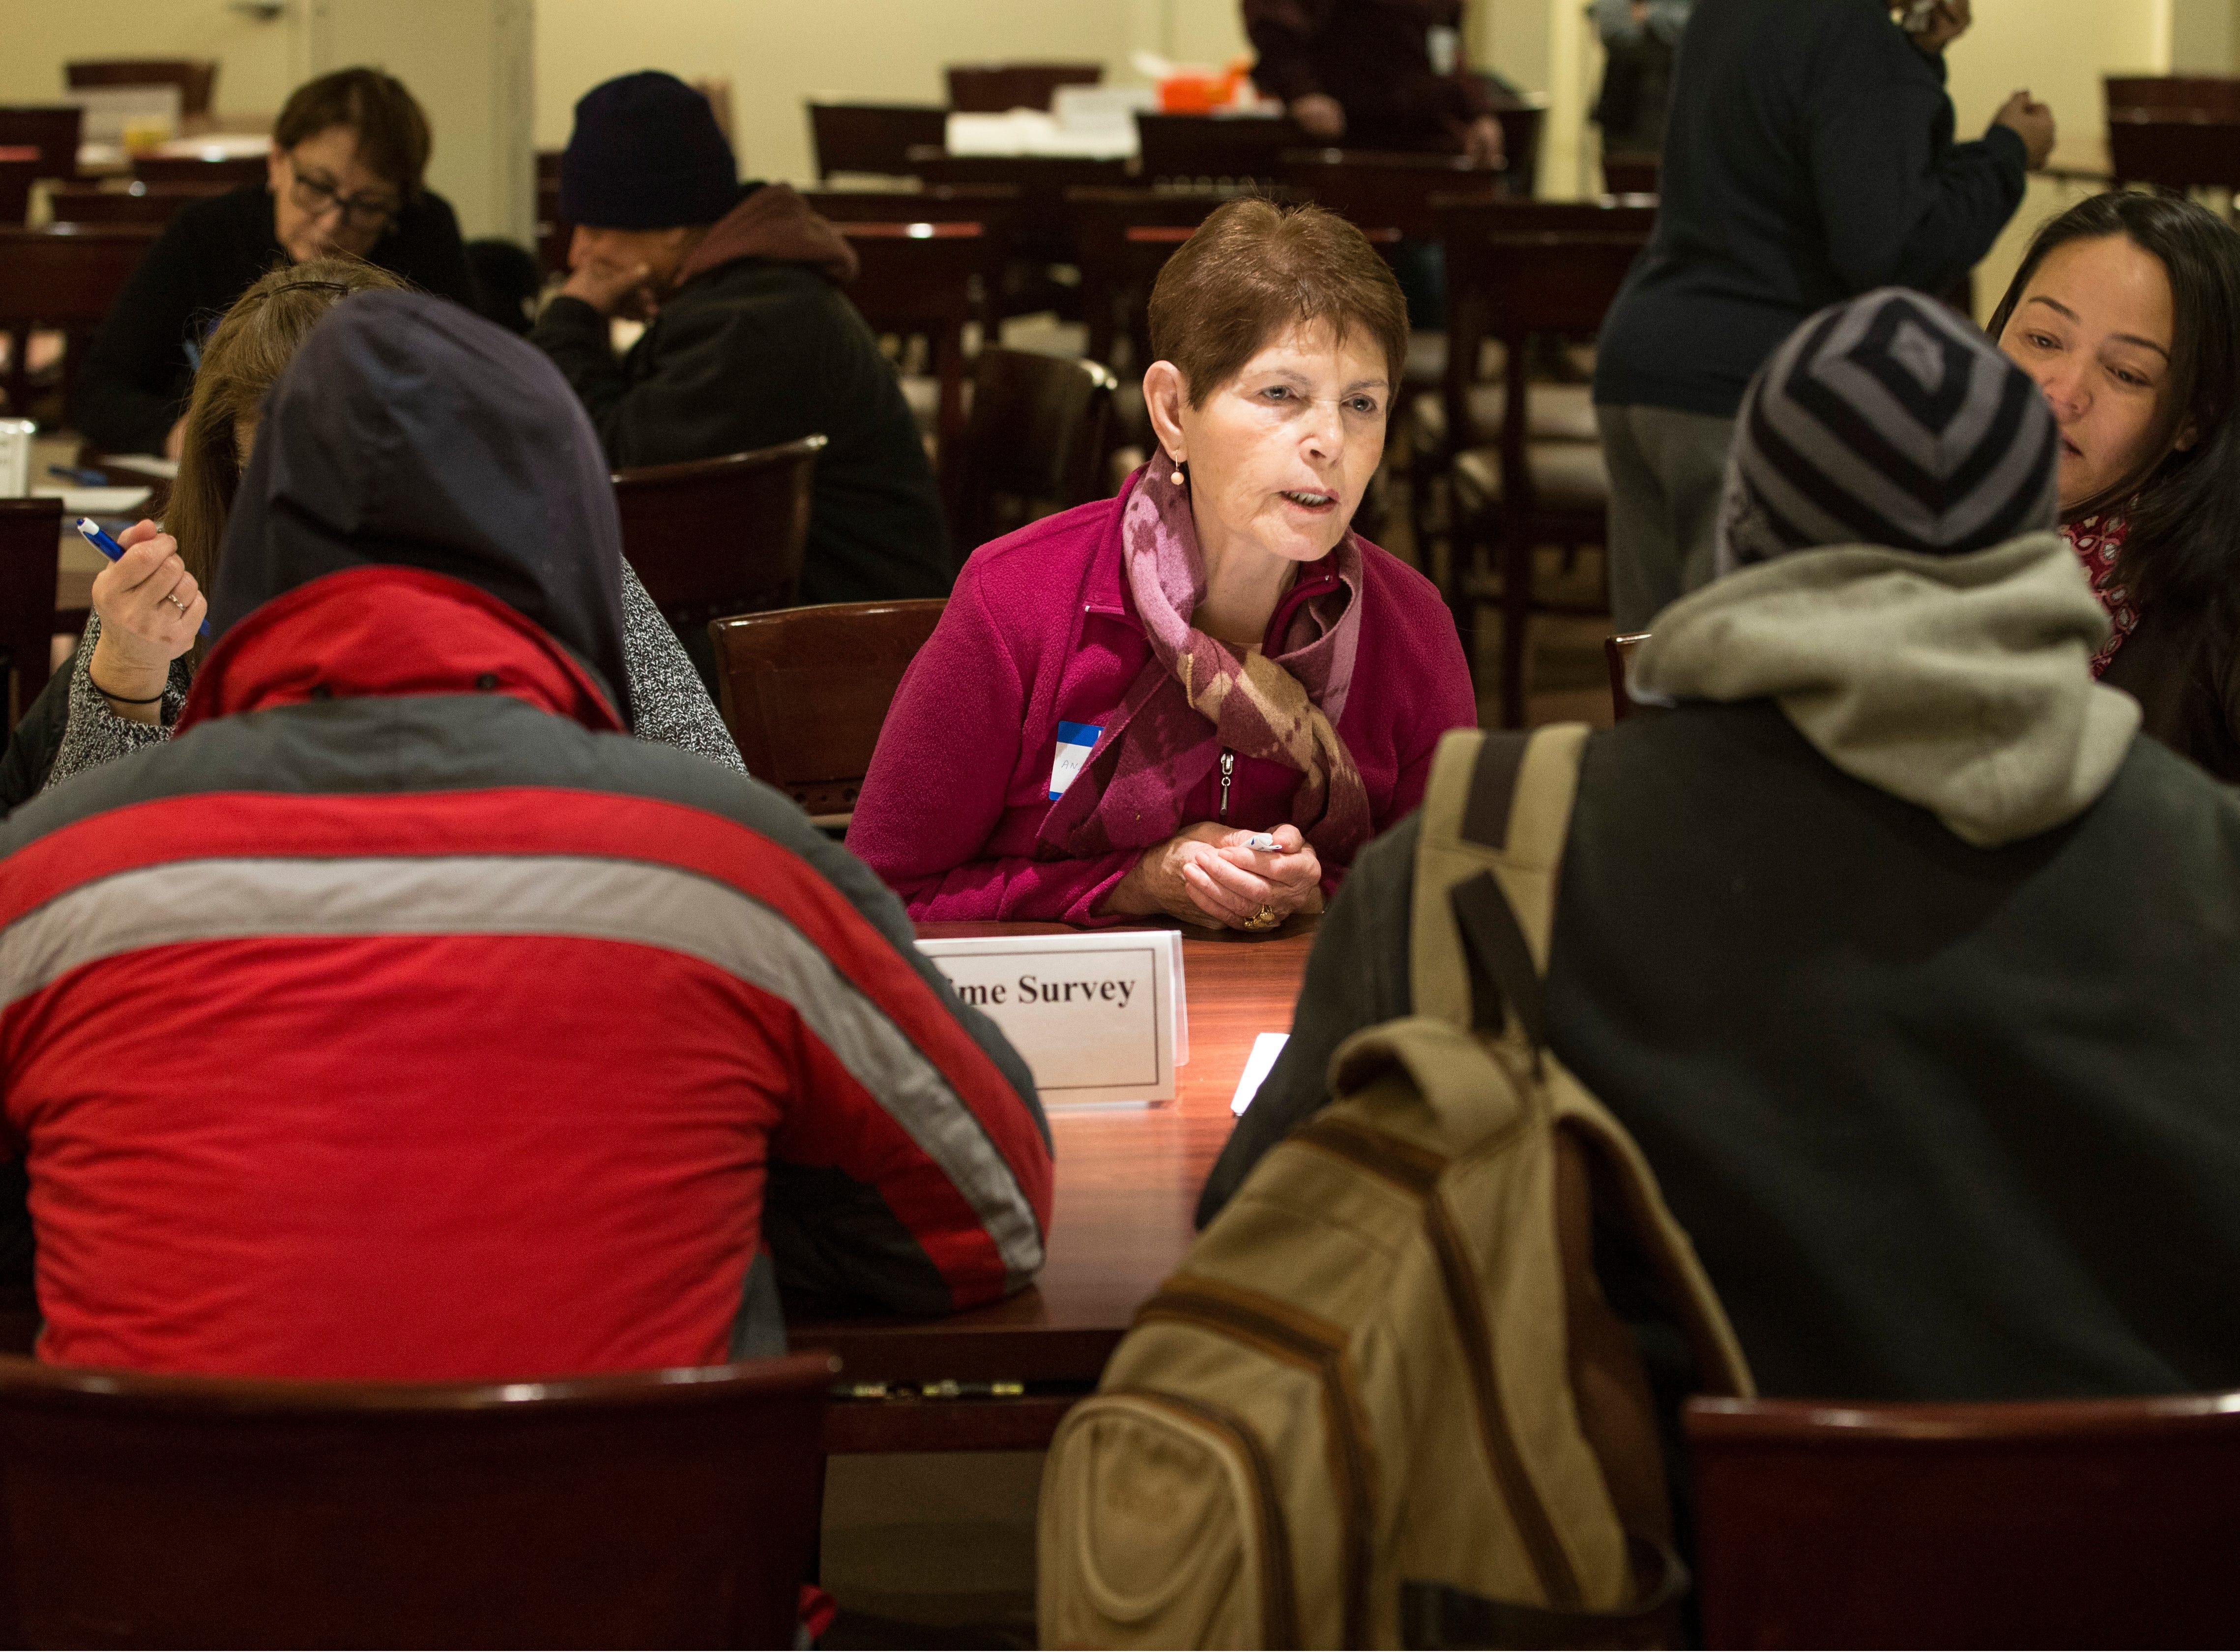 Homeless, or those living in substandard housing, check in to receive clothing, food, and a medical checkup. New Jersey housing advocates conduct the state's annual NJCounts, a point-in-time count of homelessness.       Freehold, NJWednesday, January 23, 2019